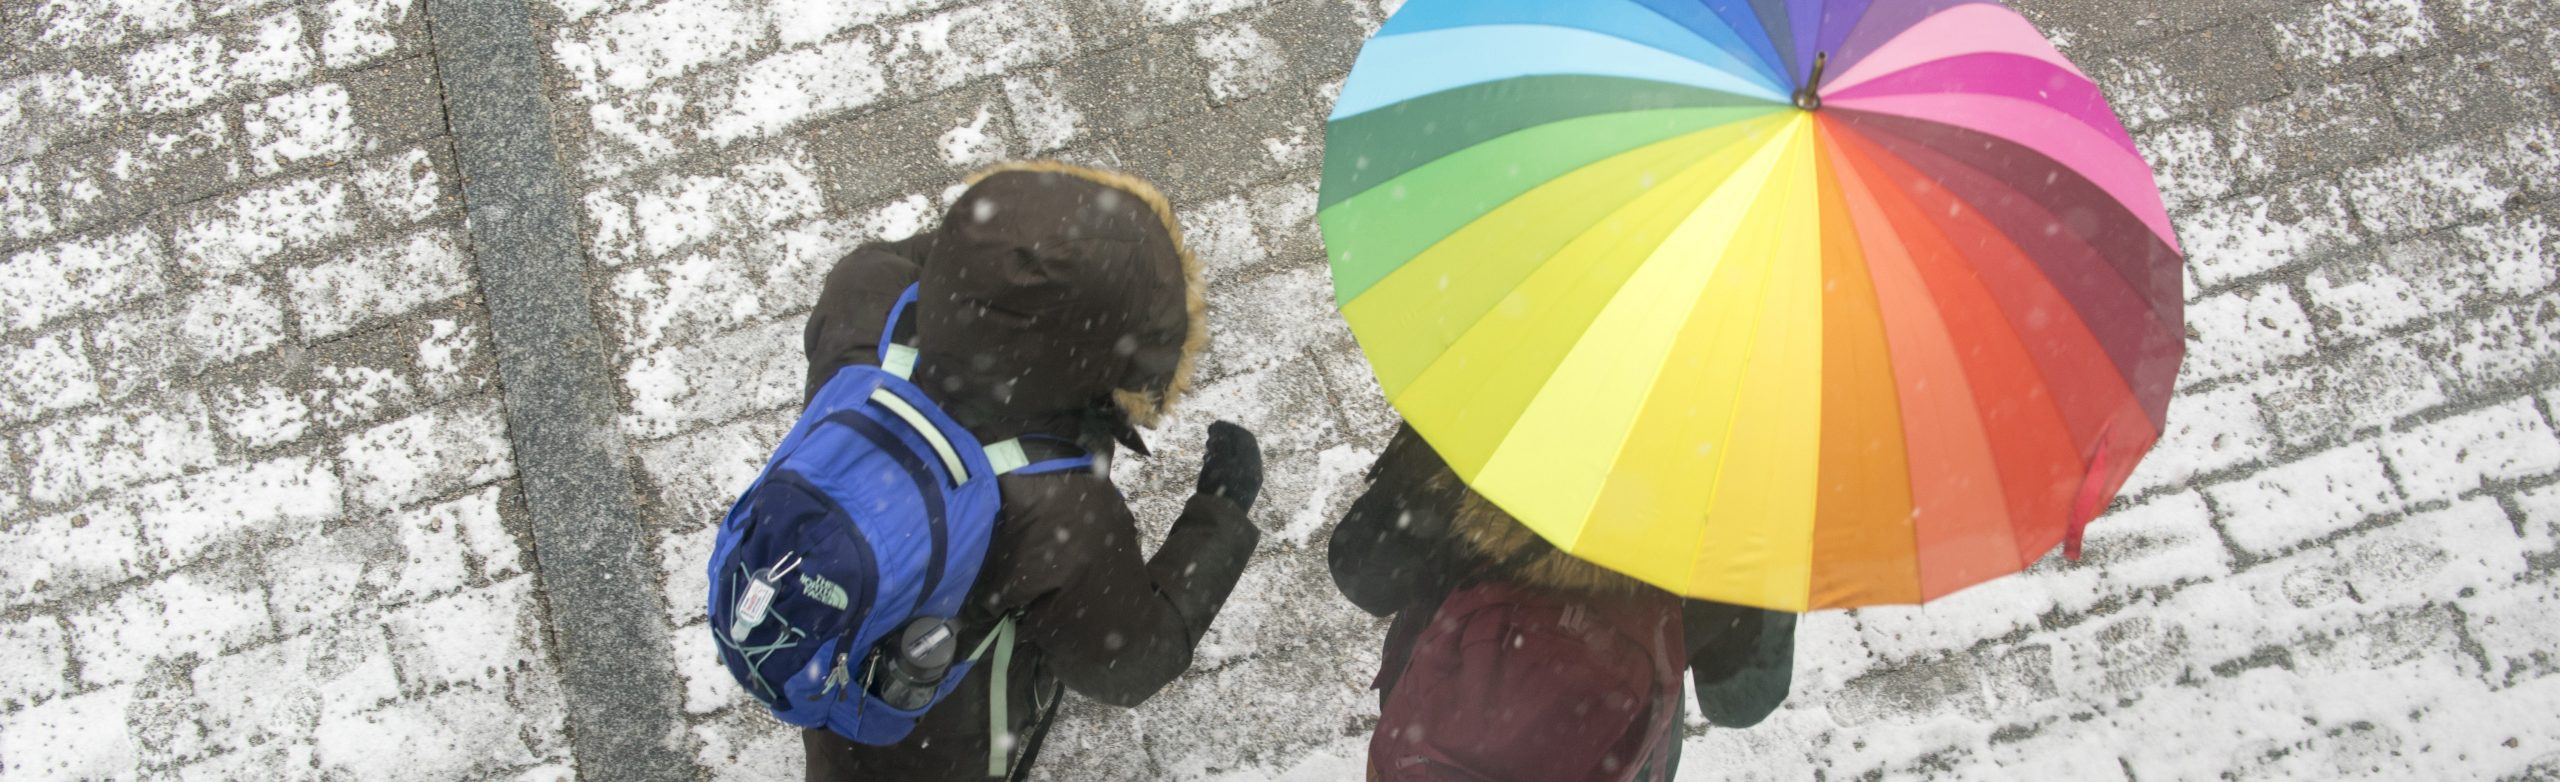 Overhead picture of two people walking on a lightly snow covered sidewalk, one person is holding a rainbow colored umbrella.